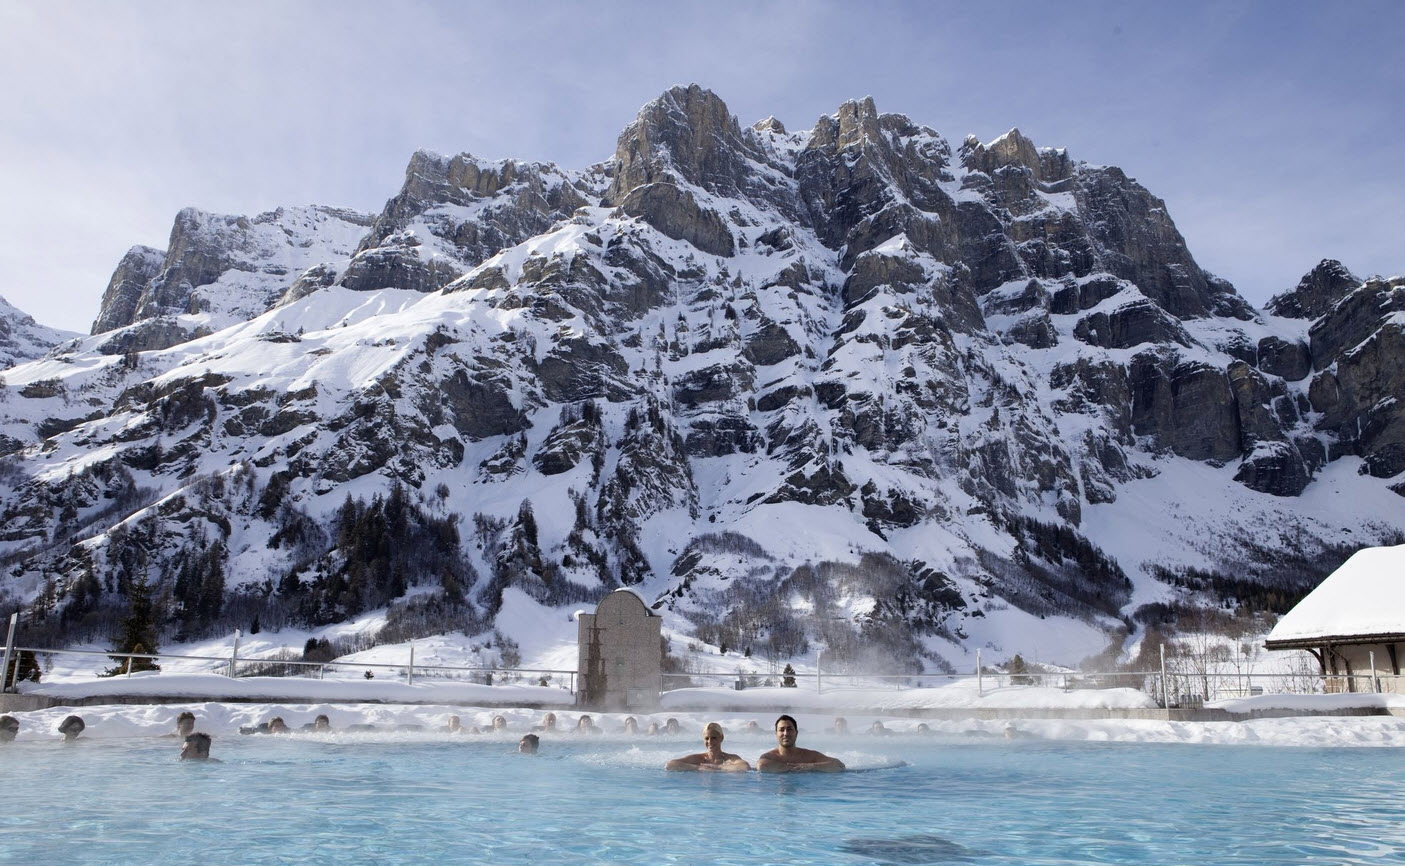 Alpentherme leukerbad travel places 24x7 for Best warm places to visit in november